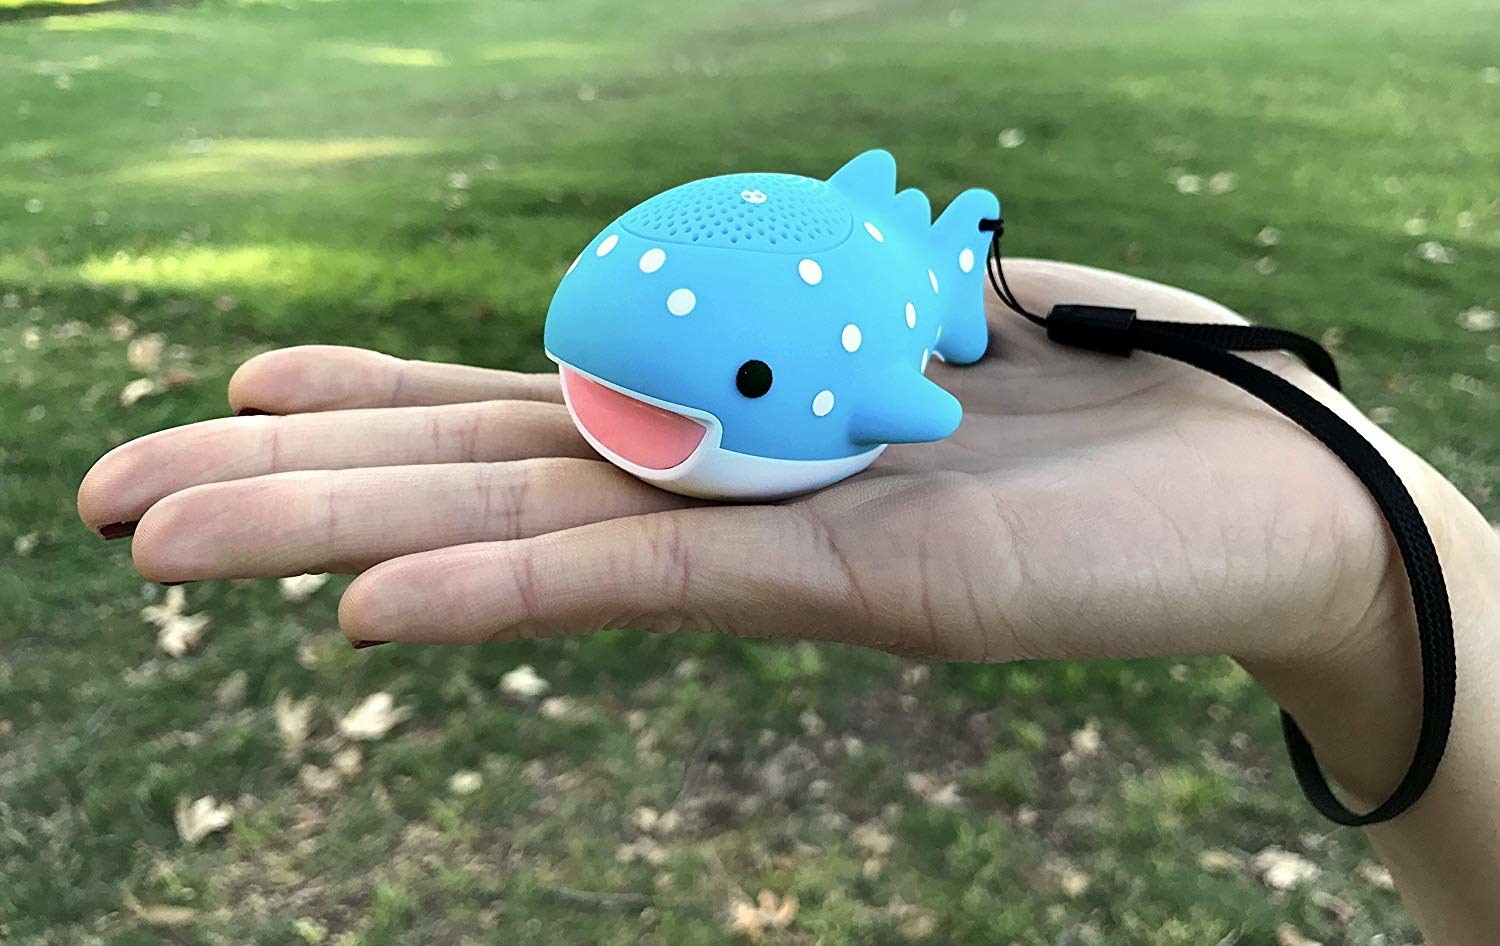 A hand holding the small whale-shaped speaker with a wrist loop